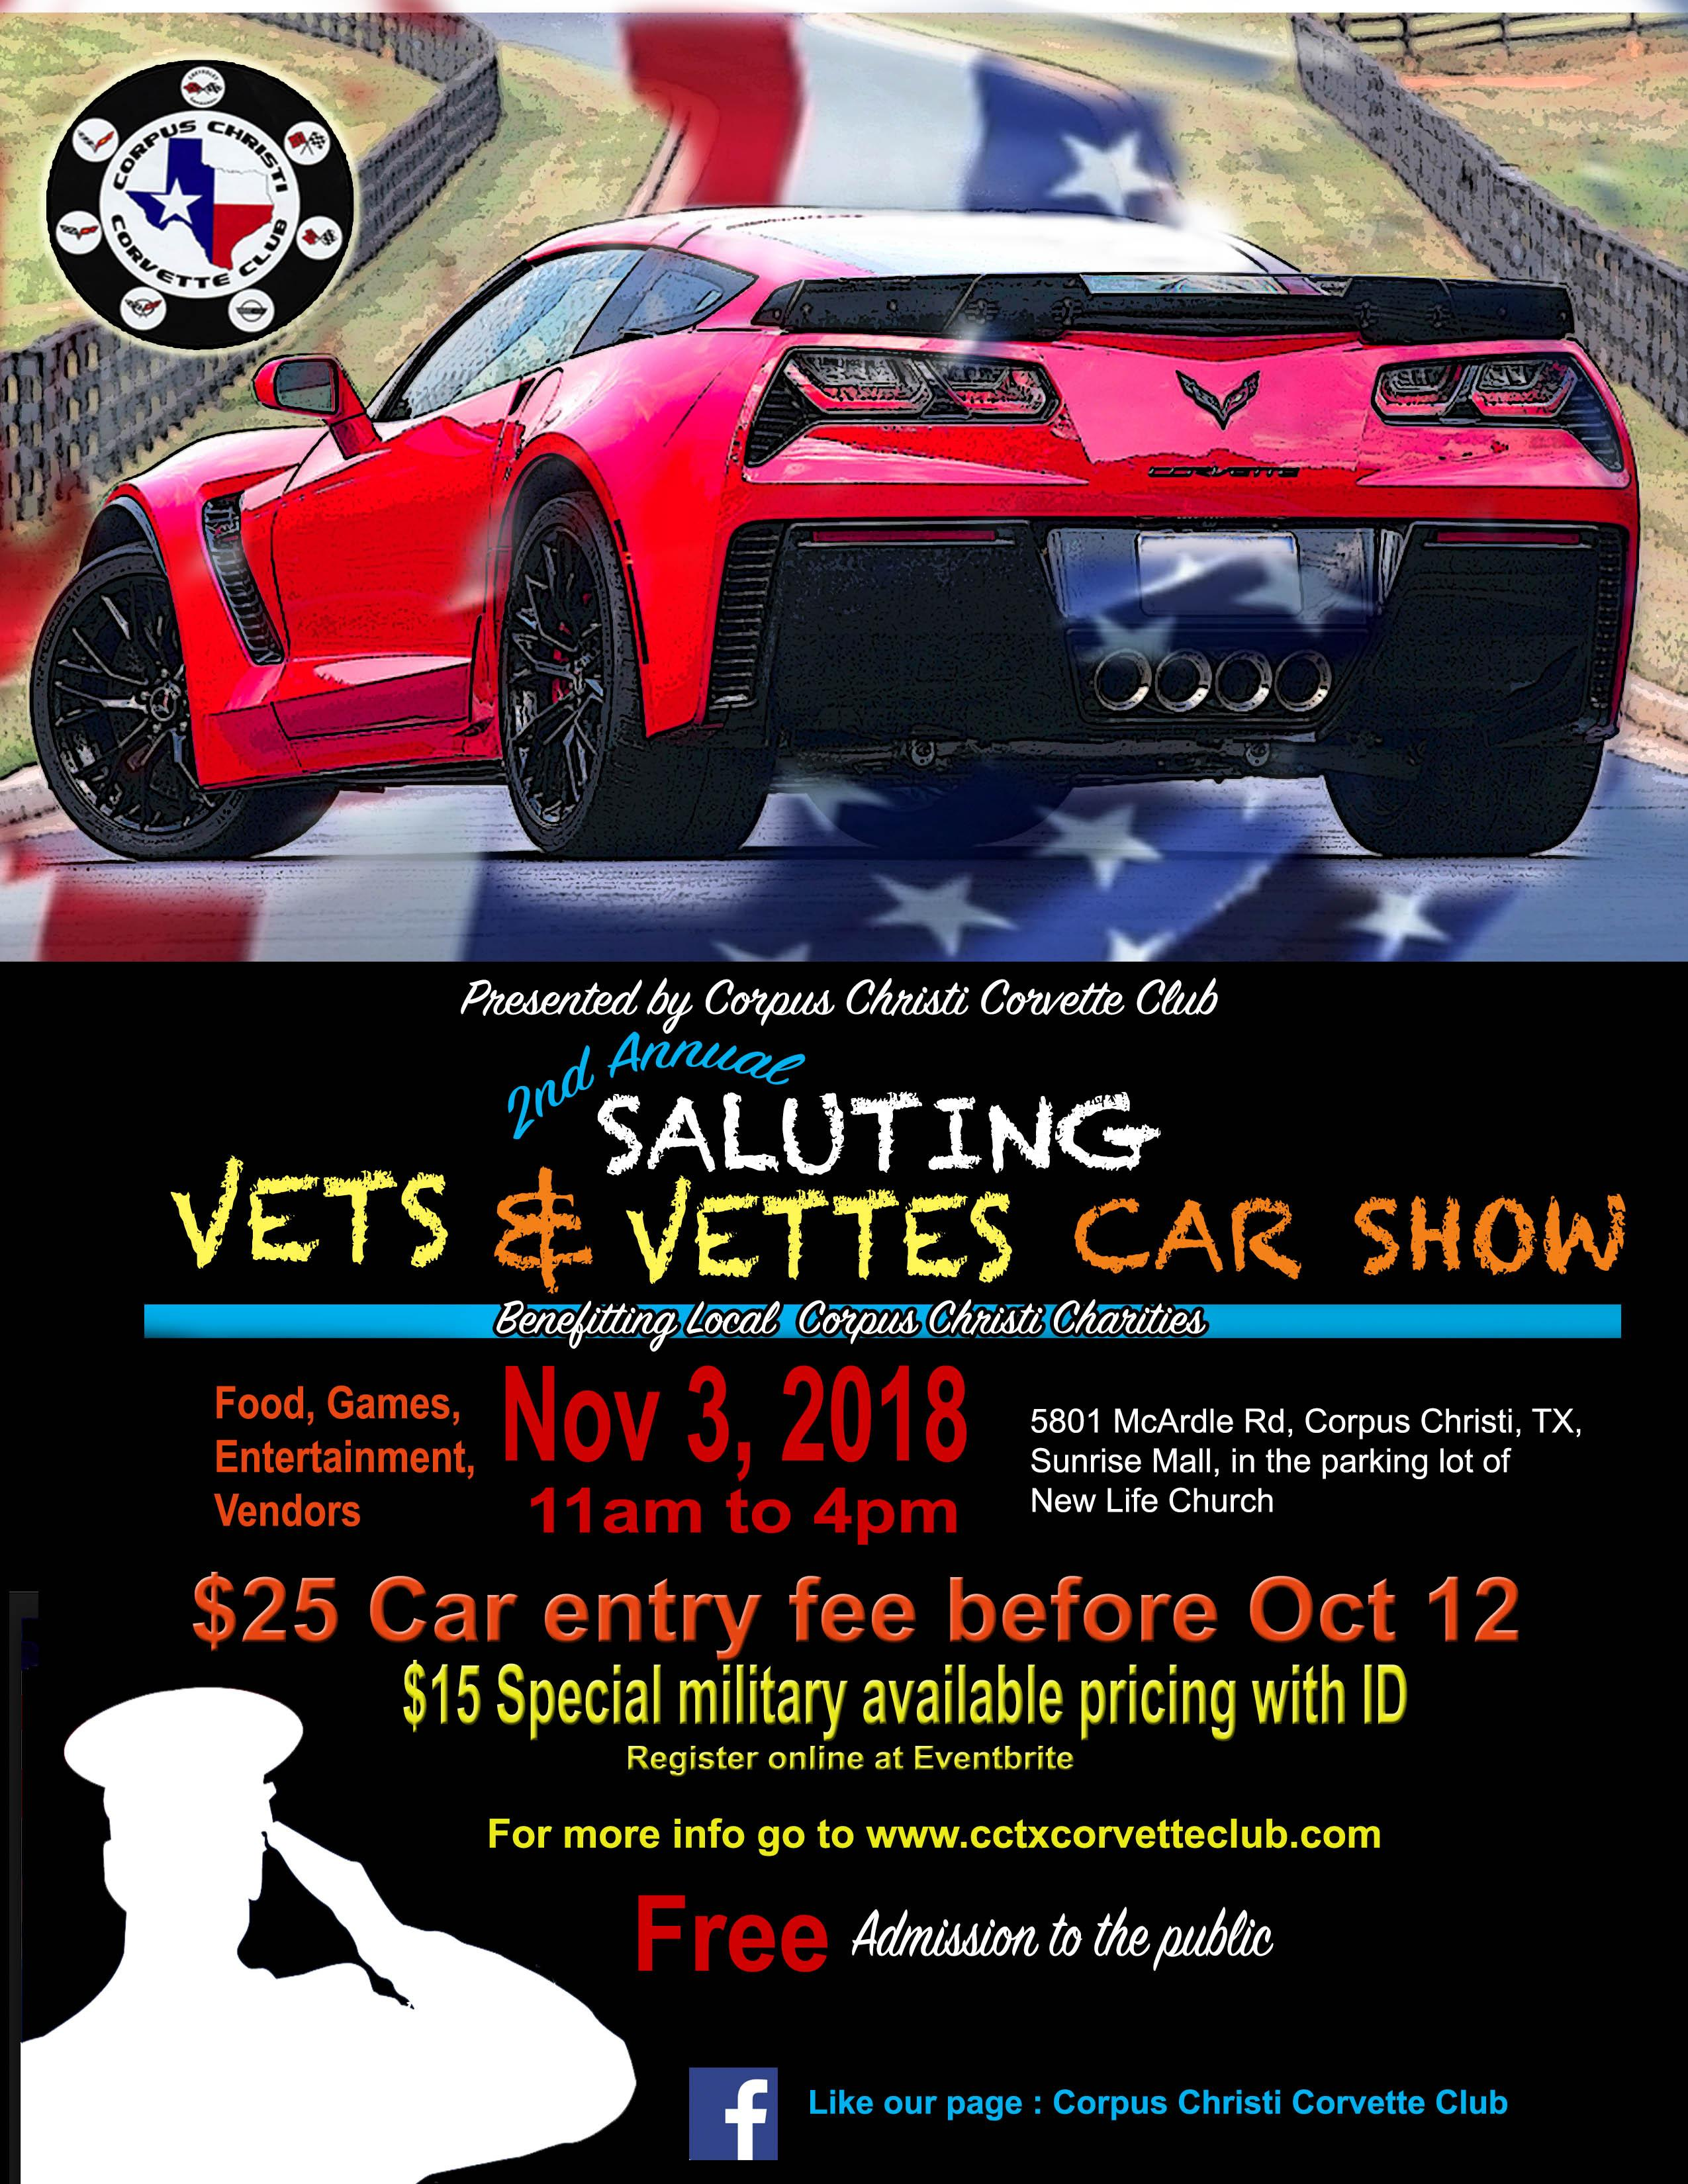 Nd Annual Saluting Vets And Vettes Car Show NOV - Car show games